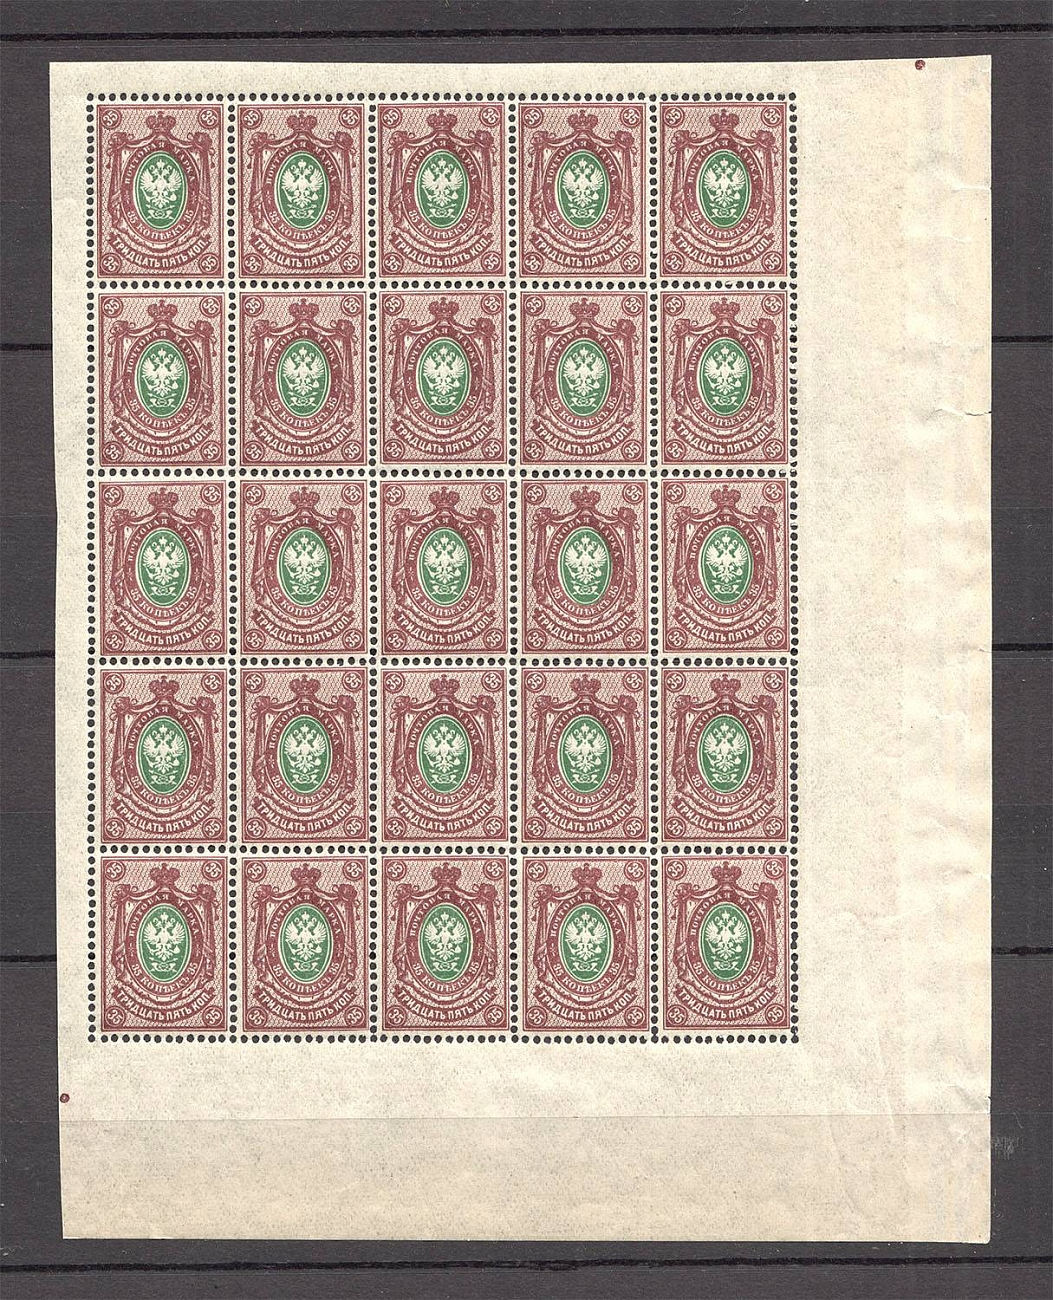 Lot 24 - Russia: Empire & Offices Abroad blocks -  OldLouis Auctions Russia: Empire & Offices Abroad - Rare Stamps Auction №8